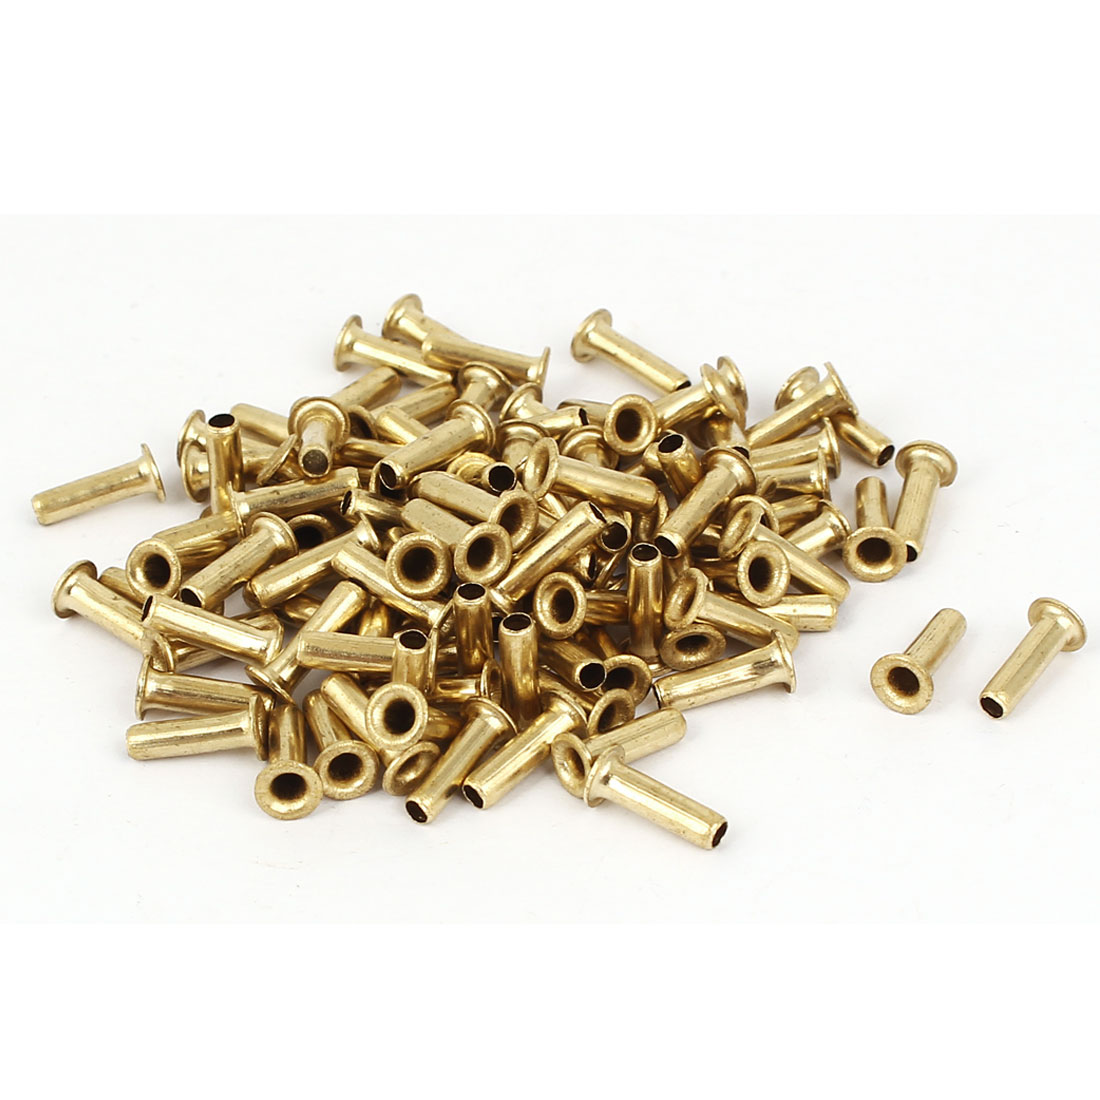 3mm x 10mm Double Sided Brass Plated Hollow Rivets Grommets Gold Tone 100 Pcs